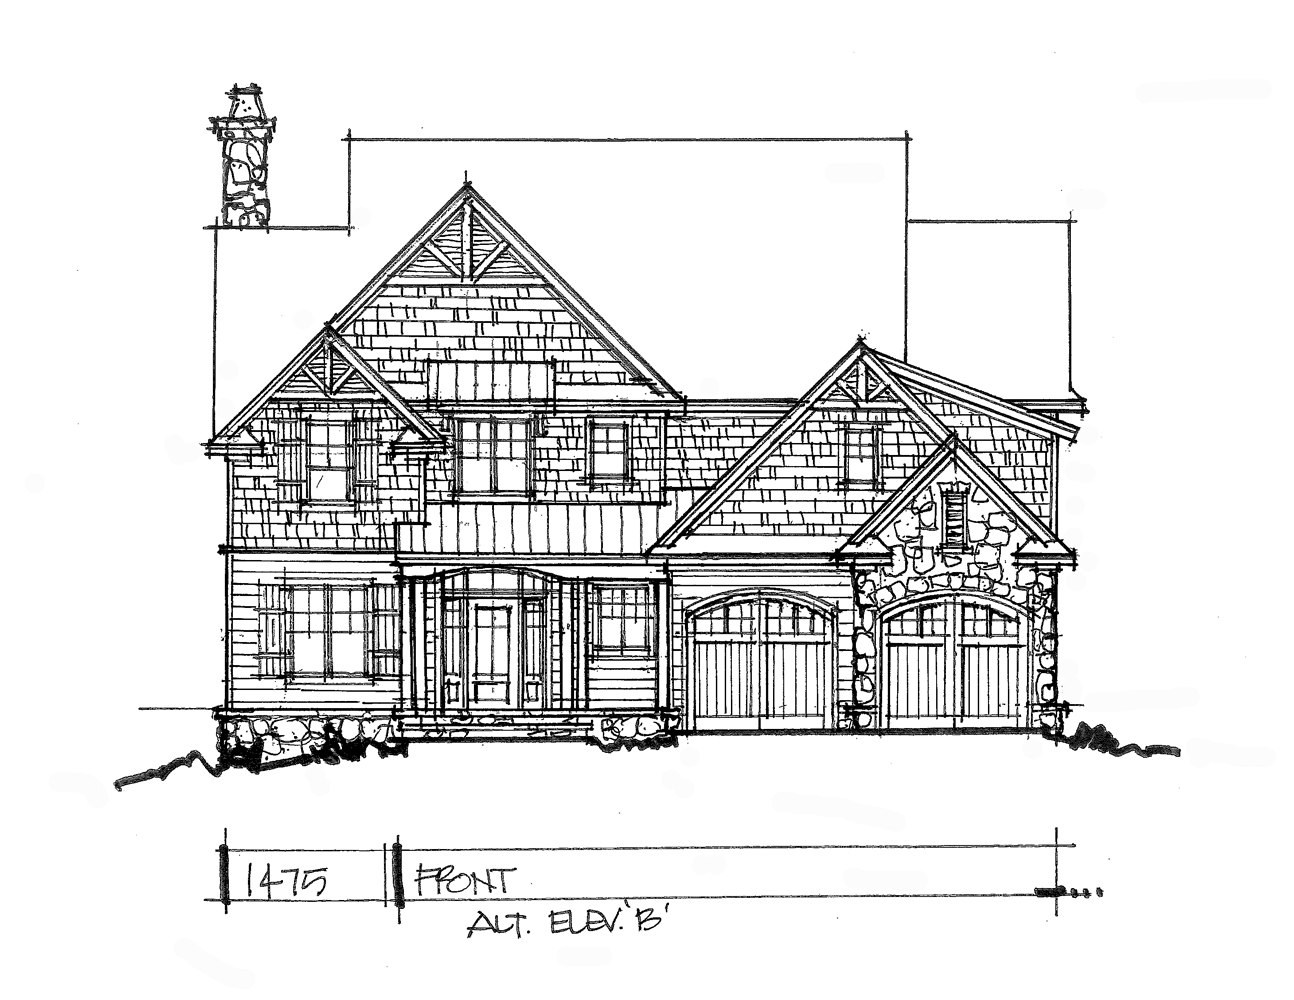 Check out front elevation B for conceptual design 1475.